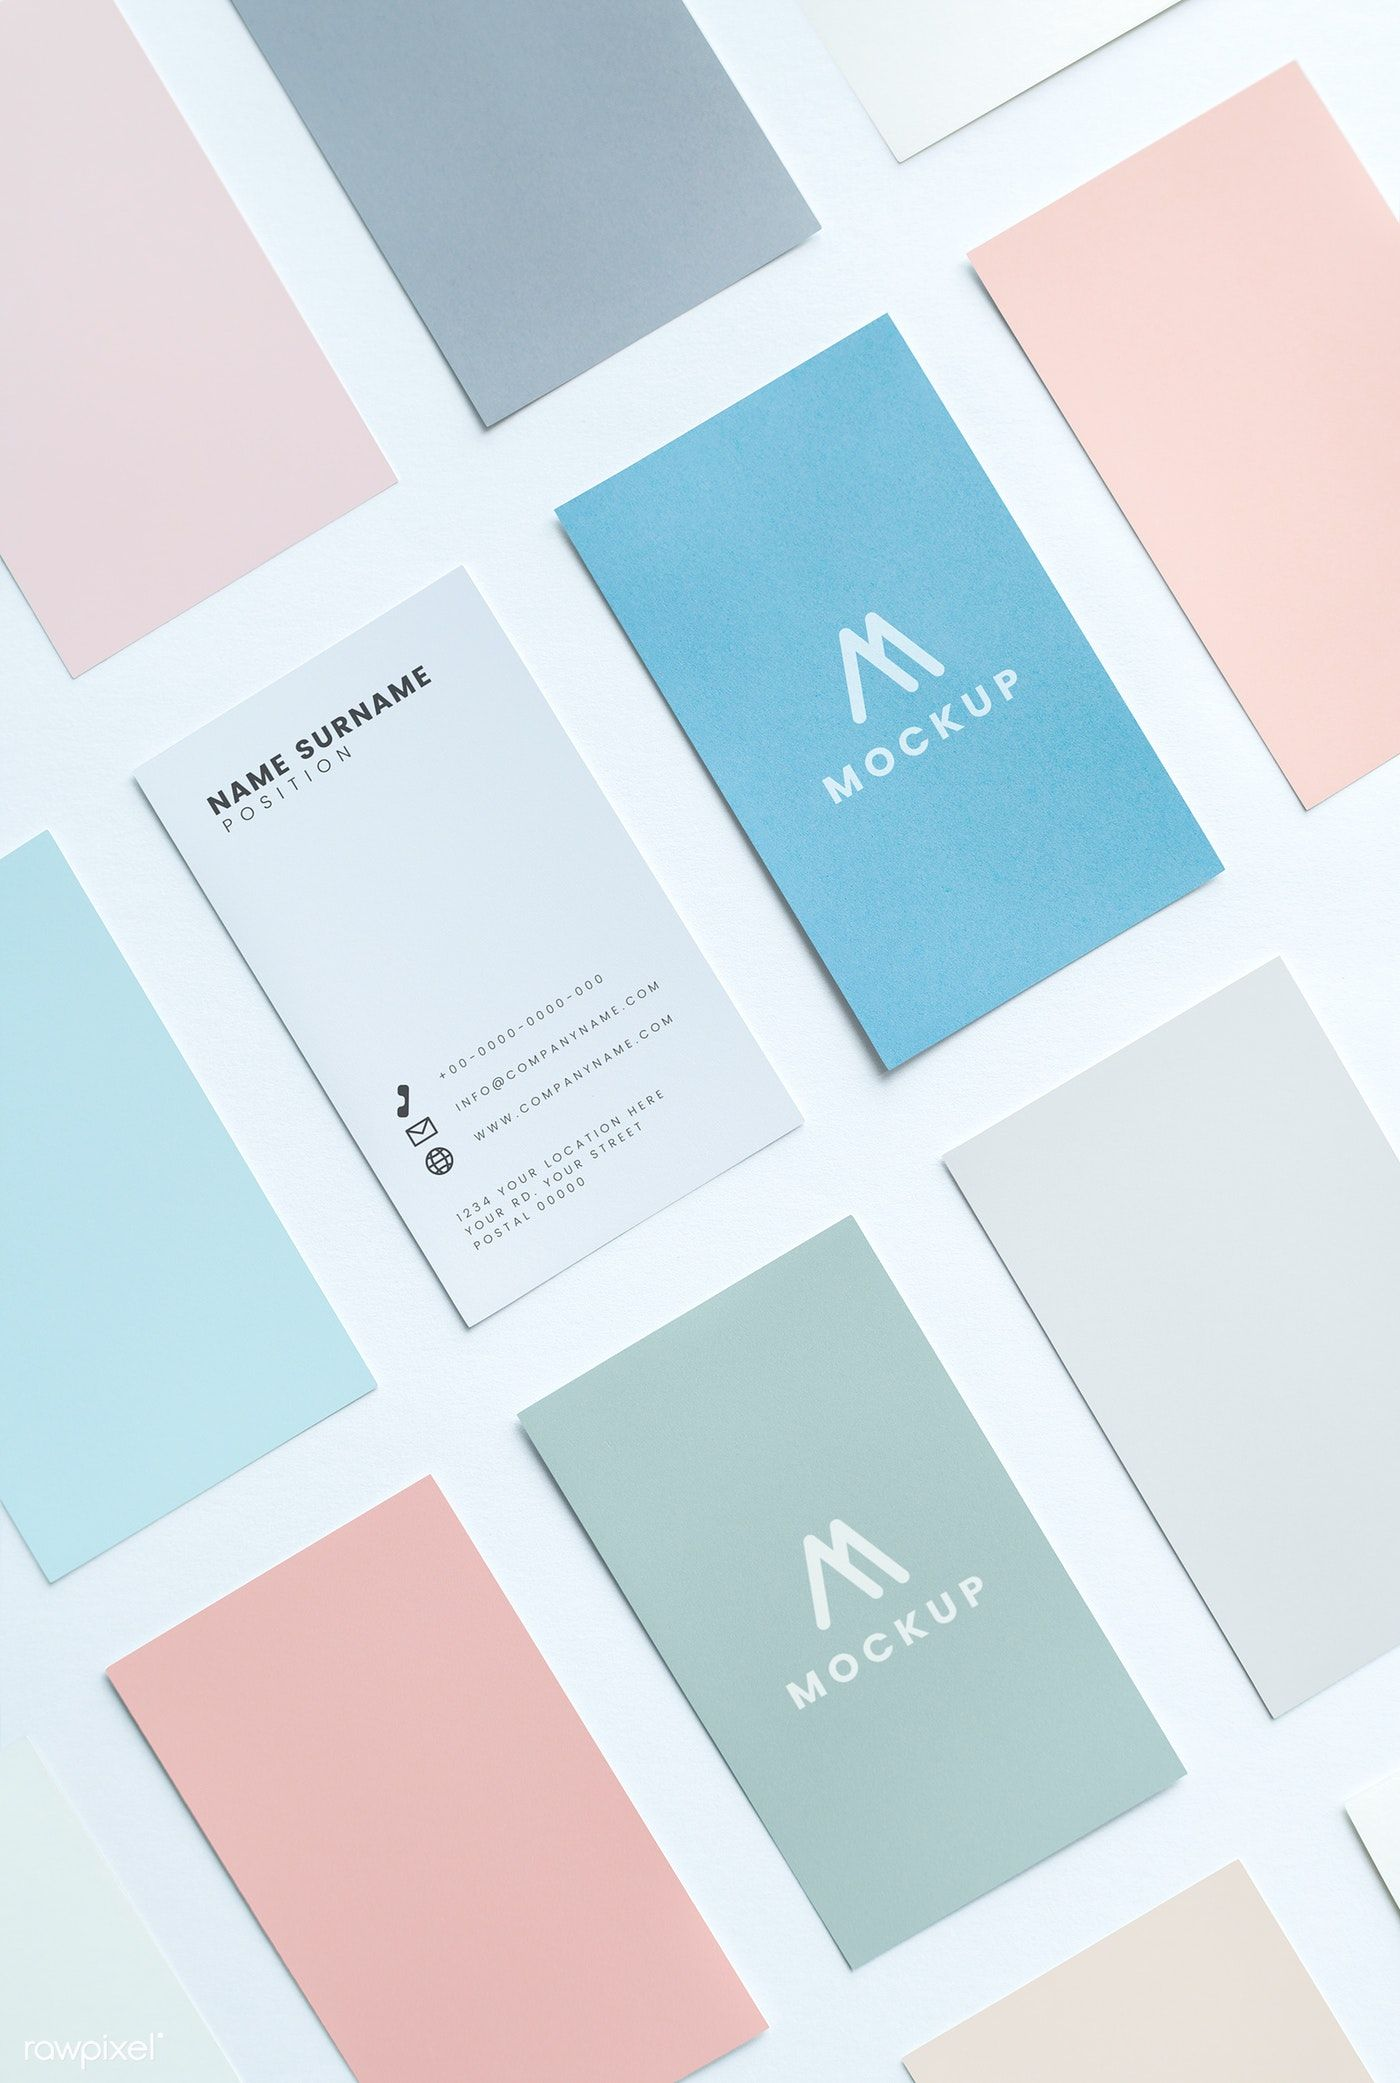 Business card and name card mockup | free image by rawpixel.com / Ake